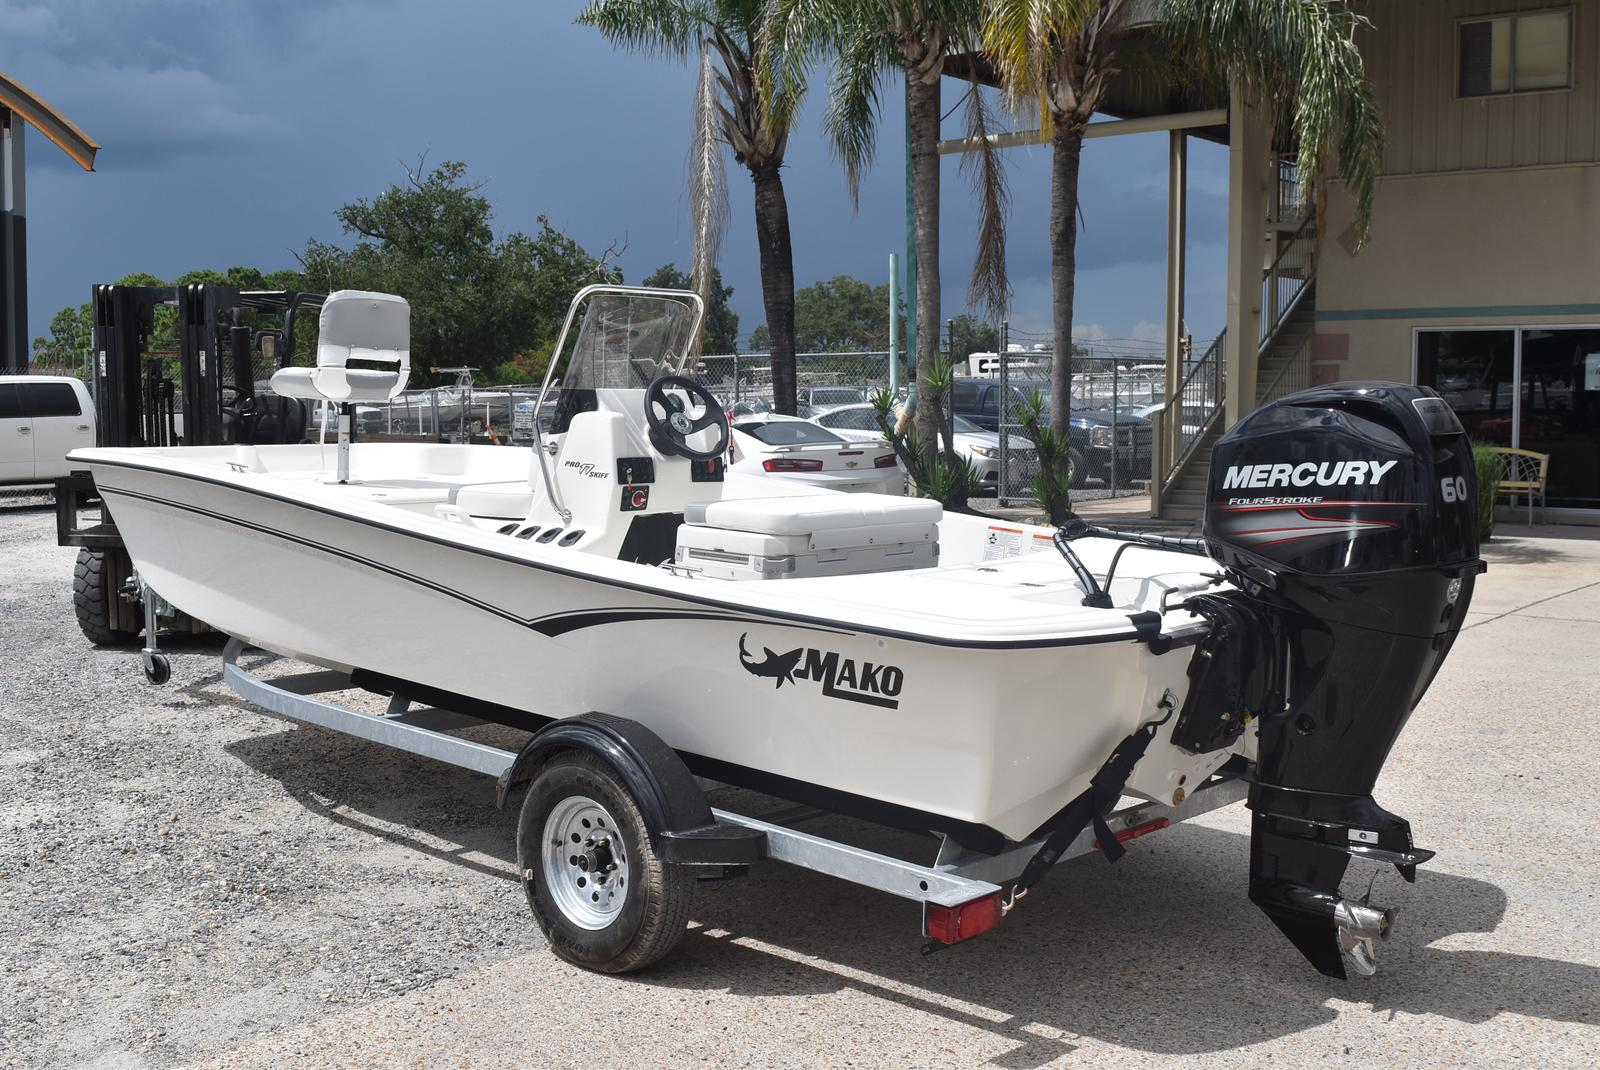 2020 Mako boat for sale, model of the boat is Pro Skiff 17, 75 ELPT & Image # 165 of 702